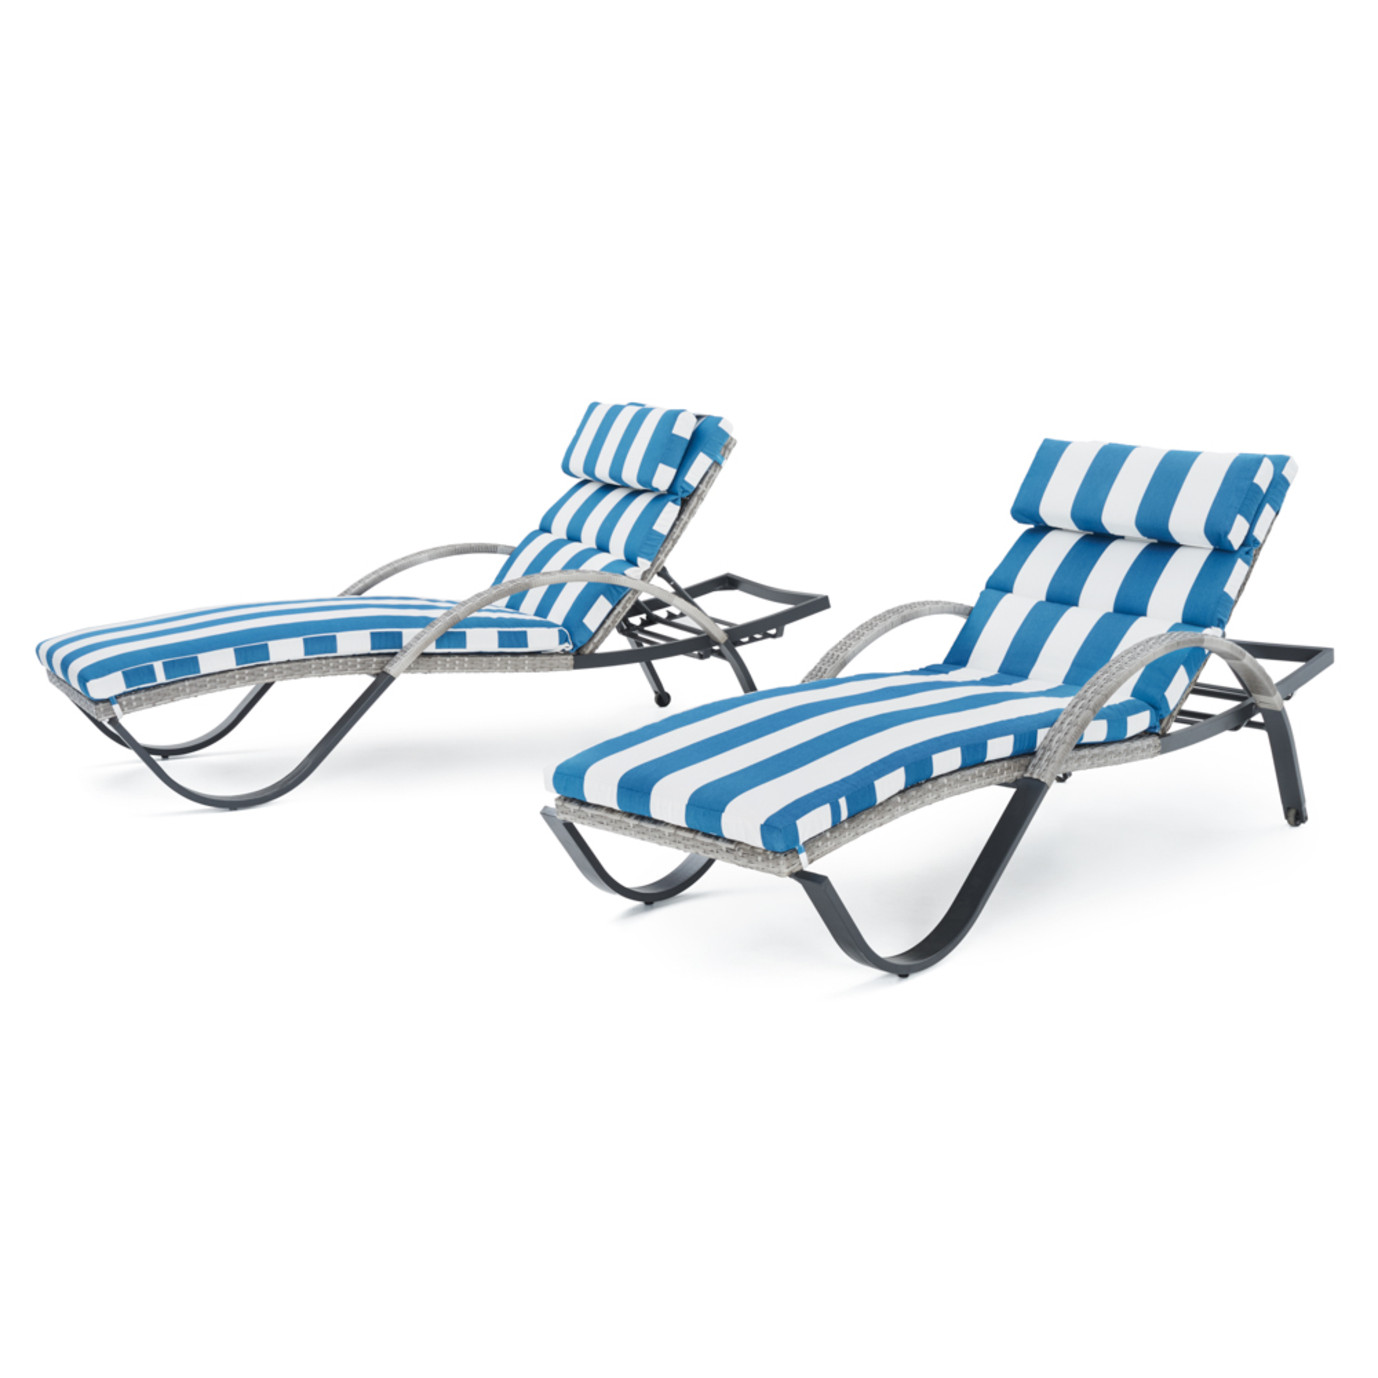 Cannes™ Chaise Lounge 2pk - Regatta Blue